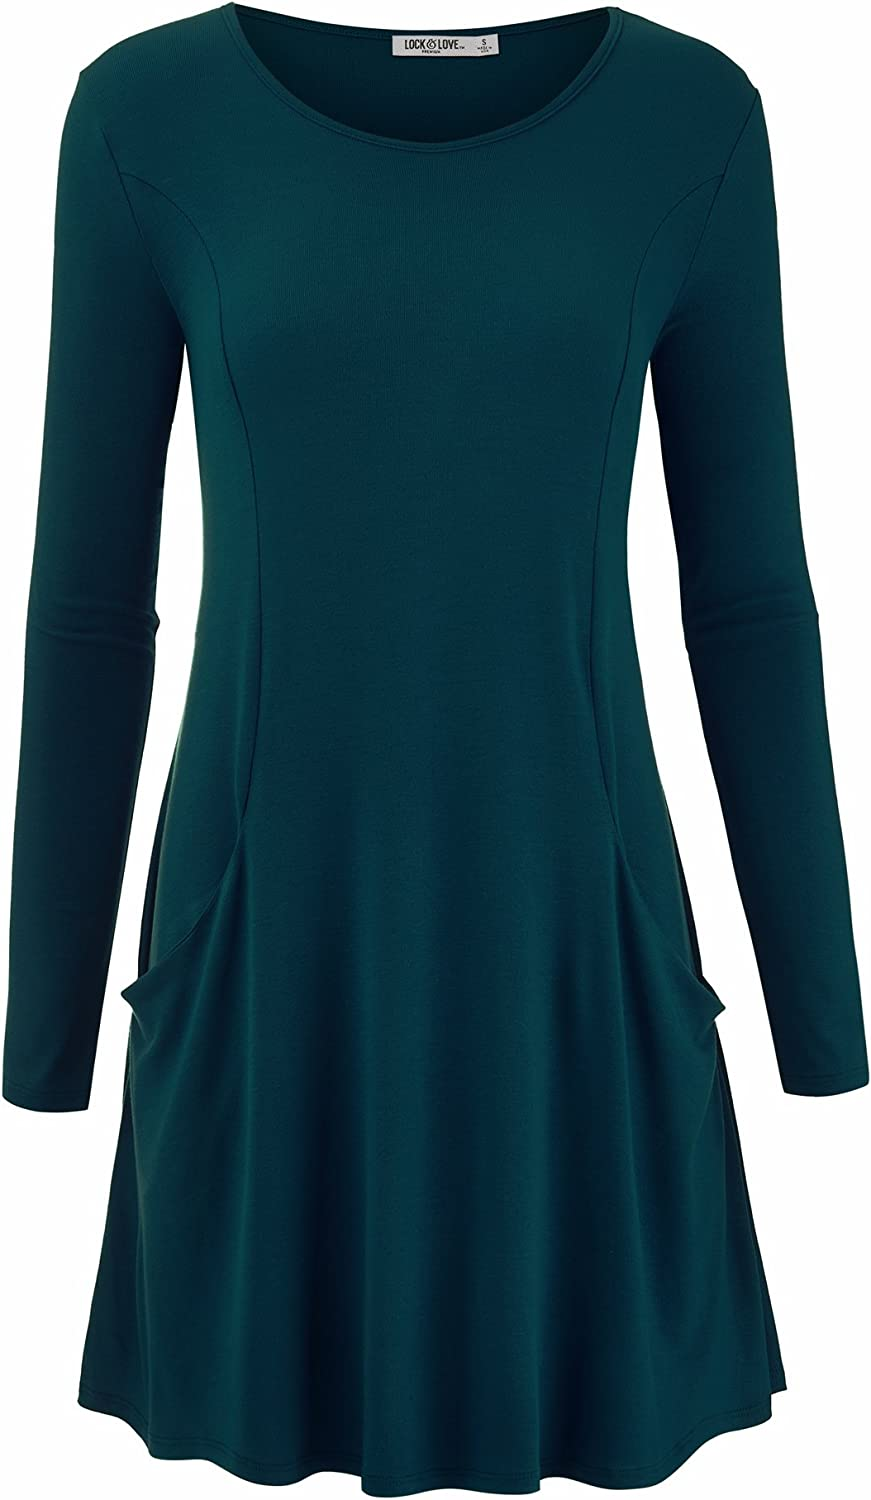 Lock and Love Women's Premium Soft French Terry Long Sleeve Crew Neck Casual Dress with Pockets